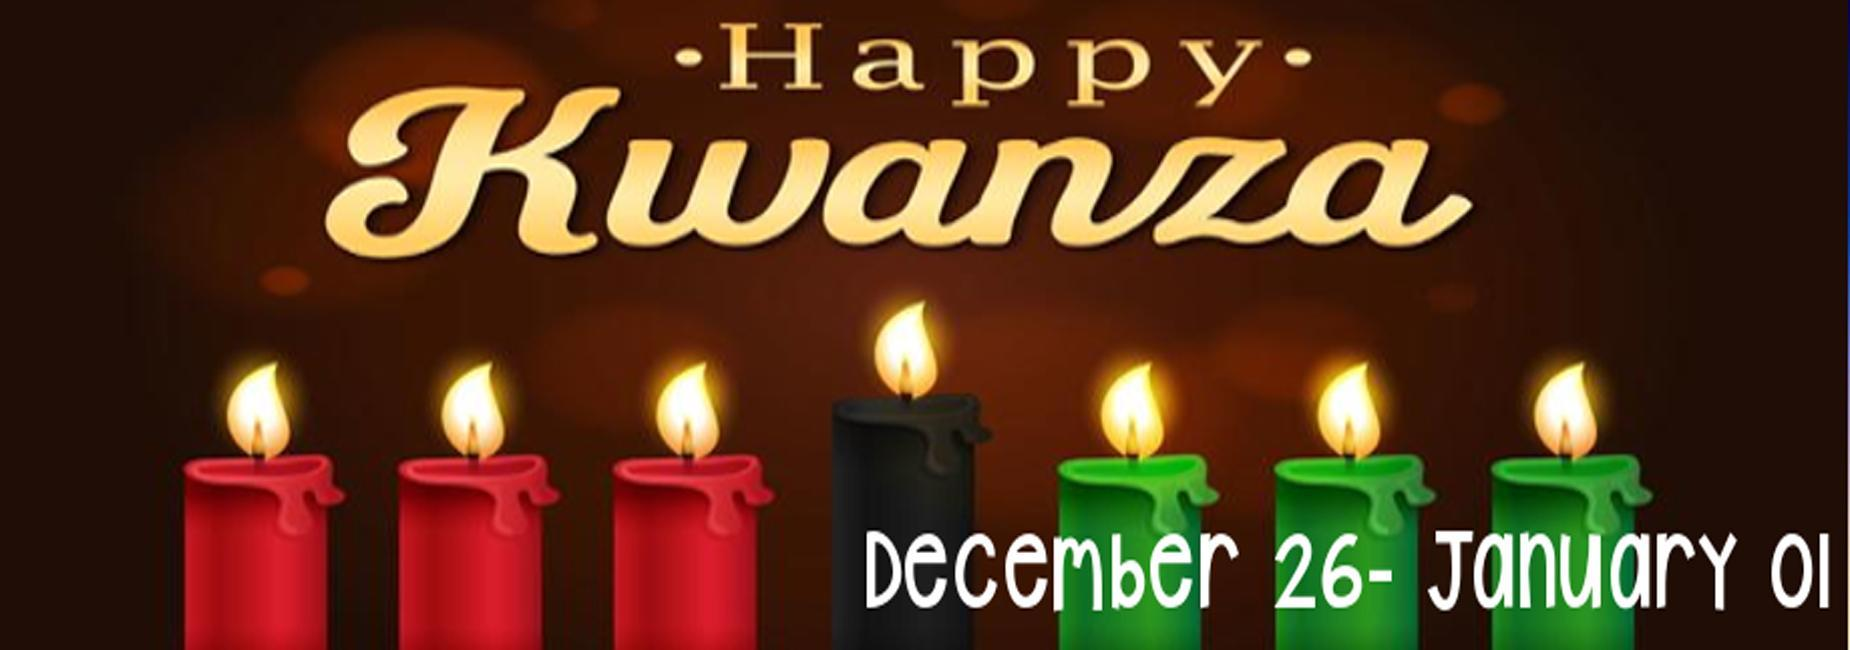 Happy Kwanzaa December 26-January 01